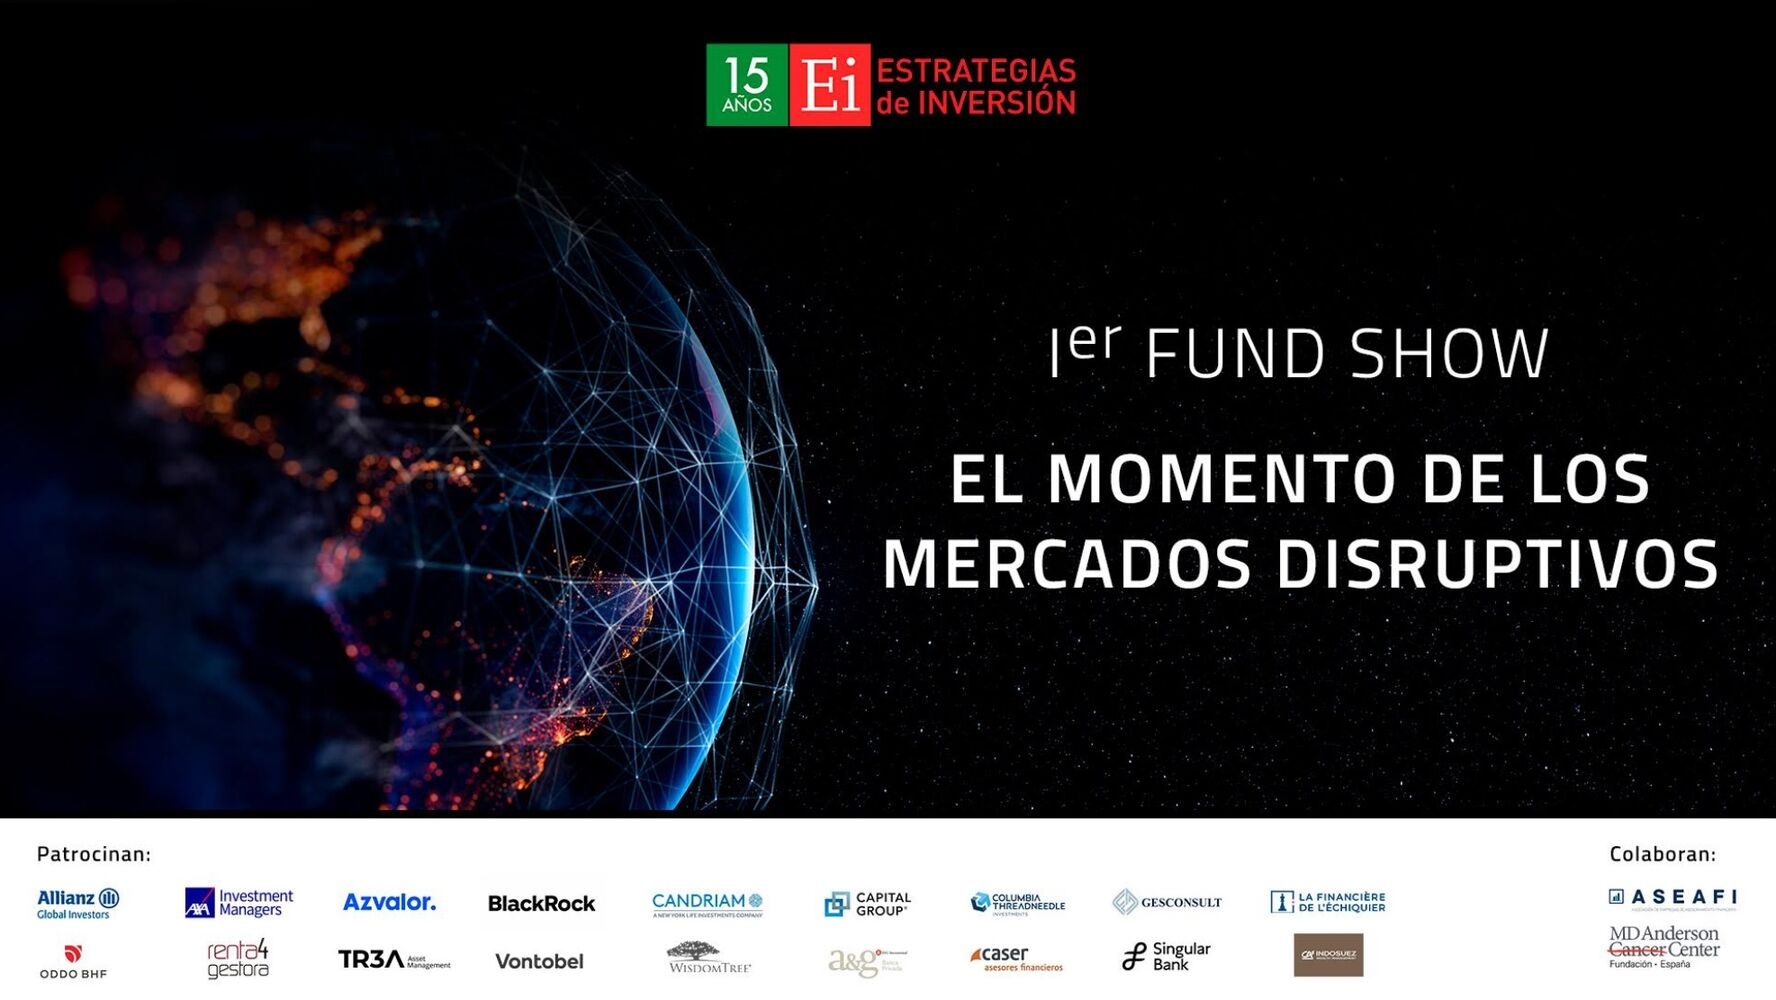 mercados_disruptivos_fund_show